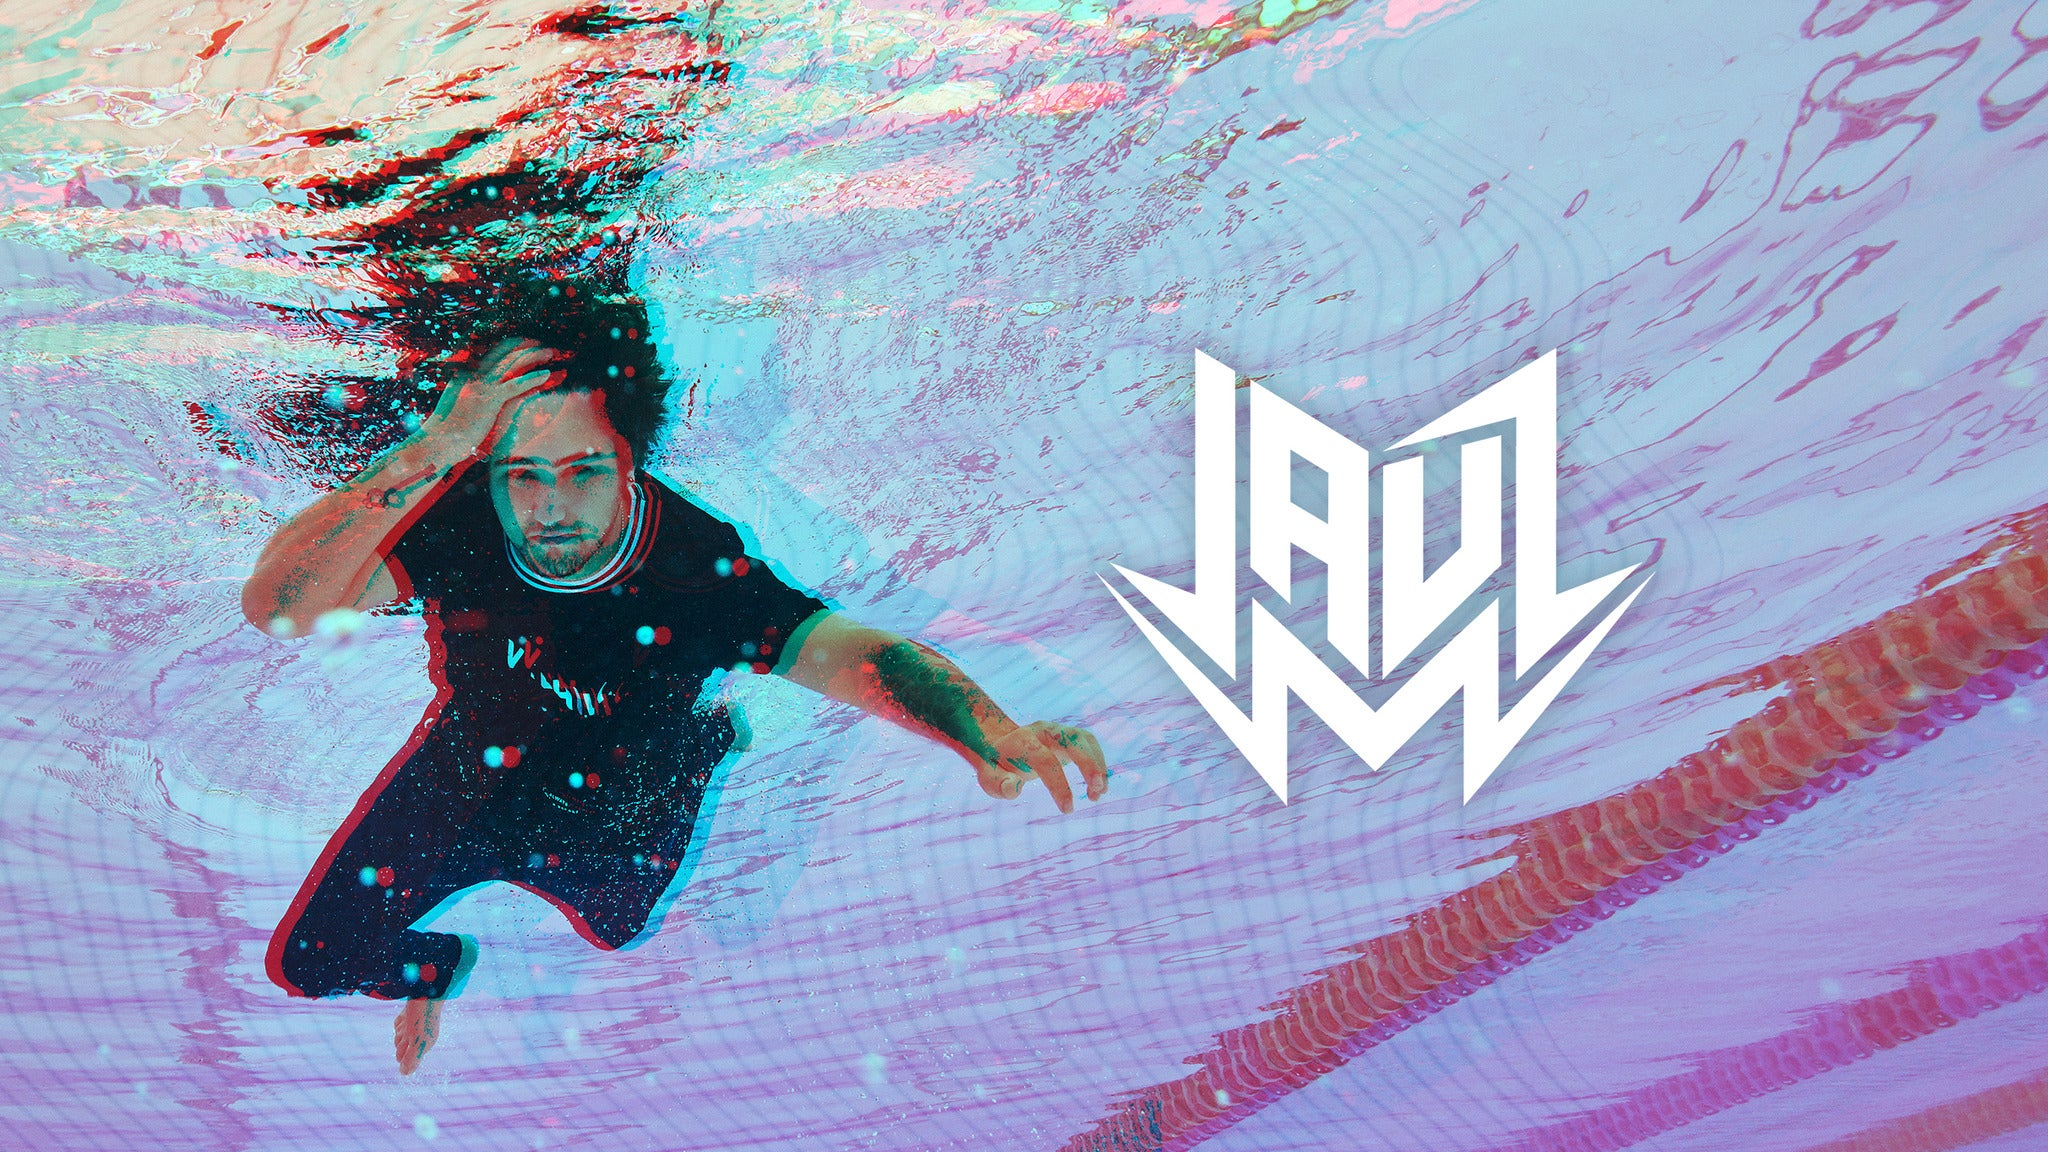 Jauz at Washington Pavilion of Arts & Science